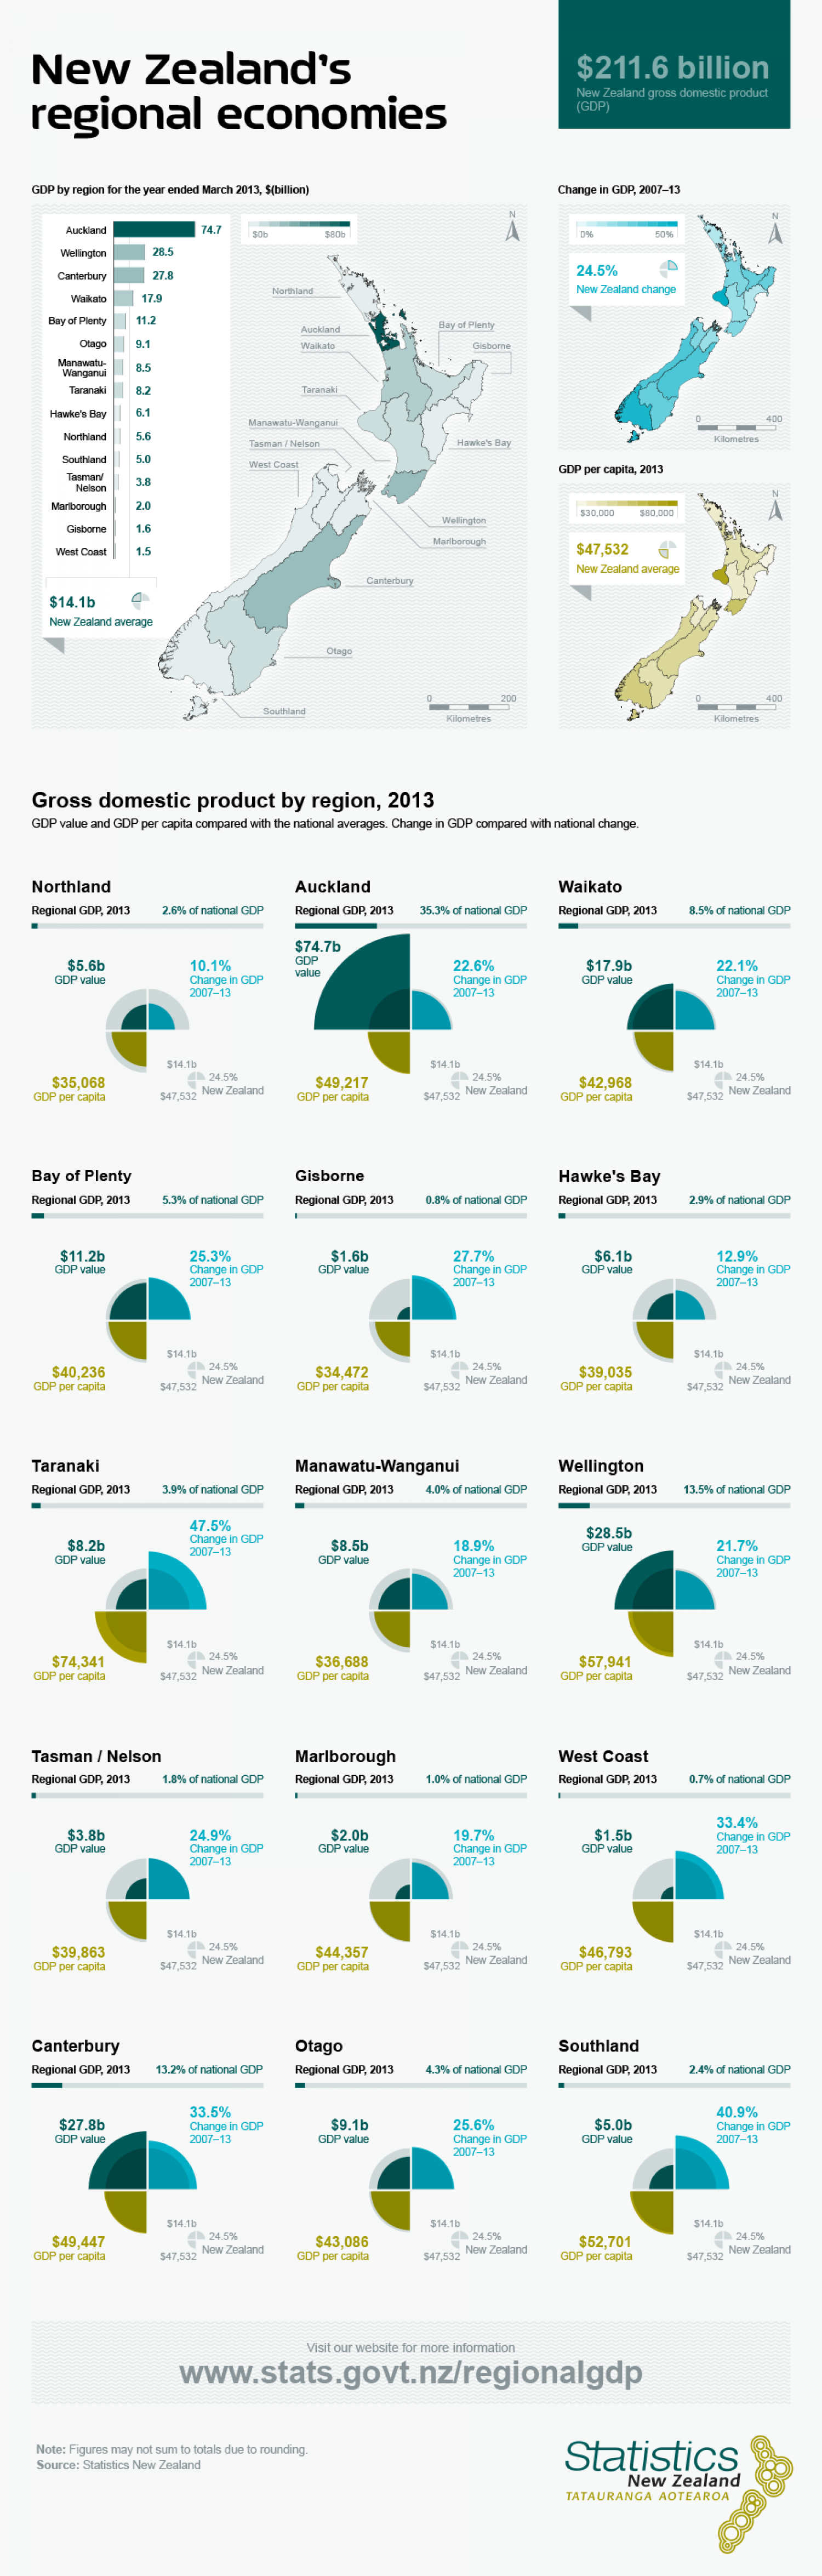 New Zealand's Regional Economies Infographic